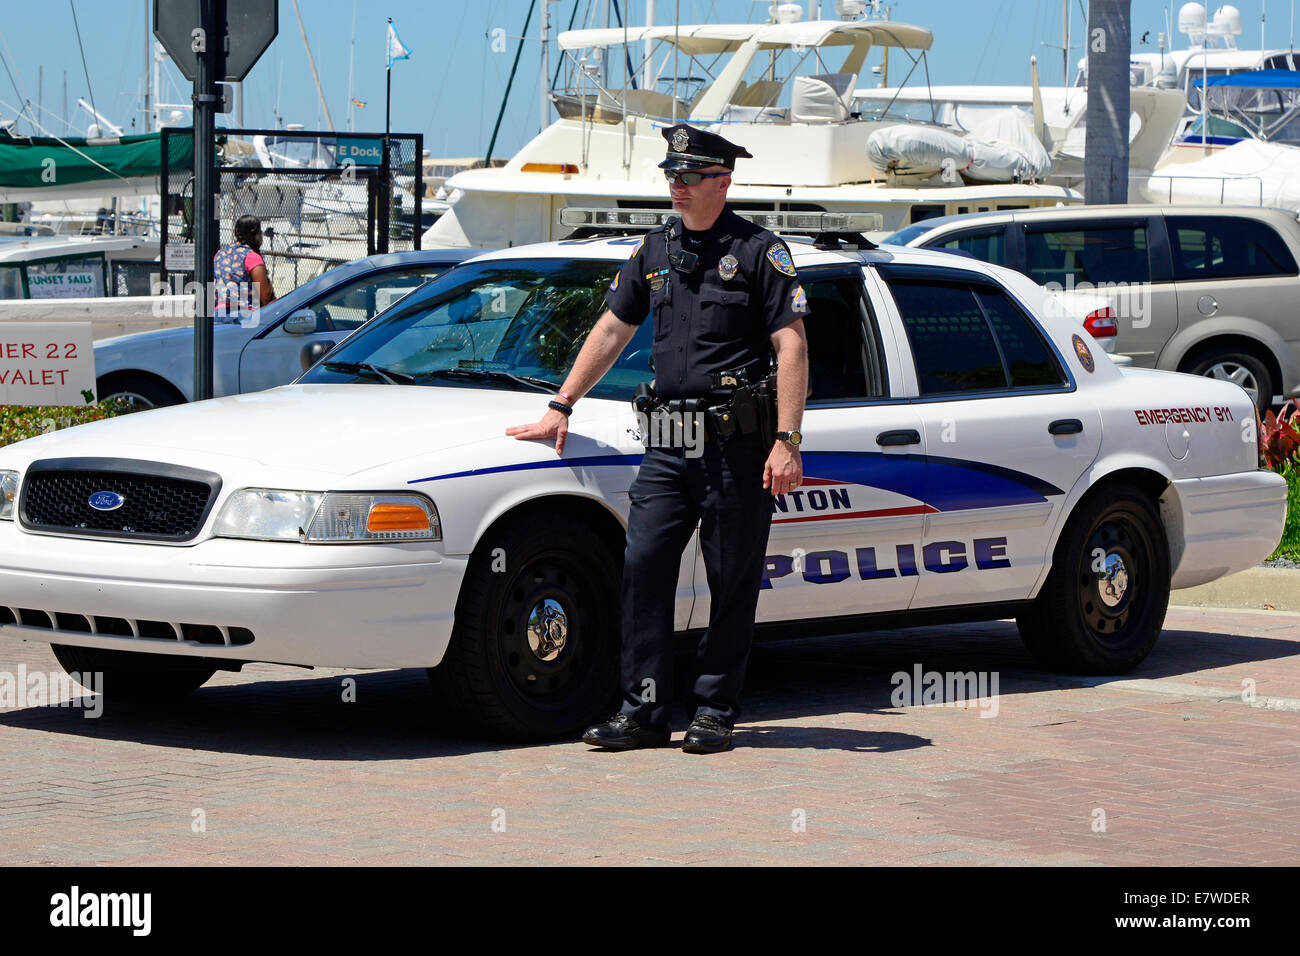 Philadelphia Police Cars >> Policeman standing by his police car Stock Photo, Royalty Free Image: 73703471 - Alamy